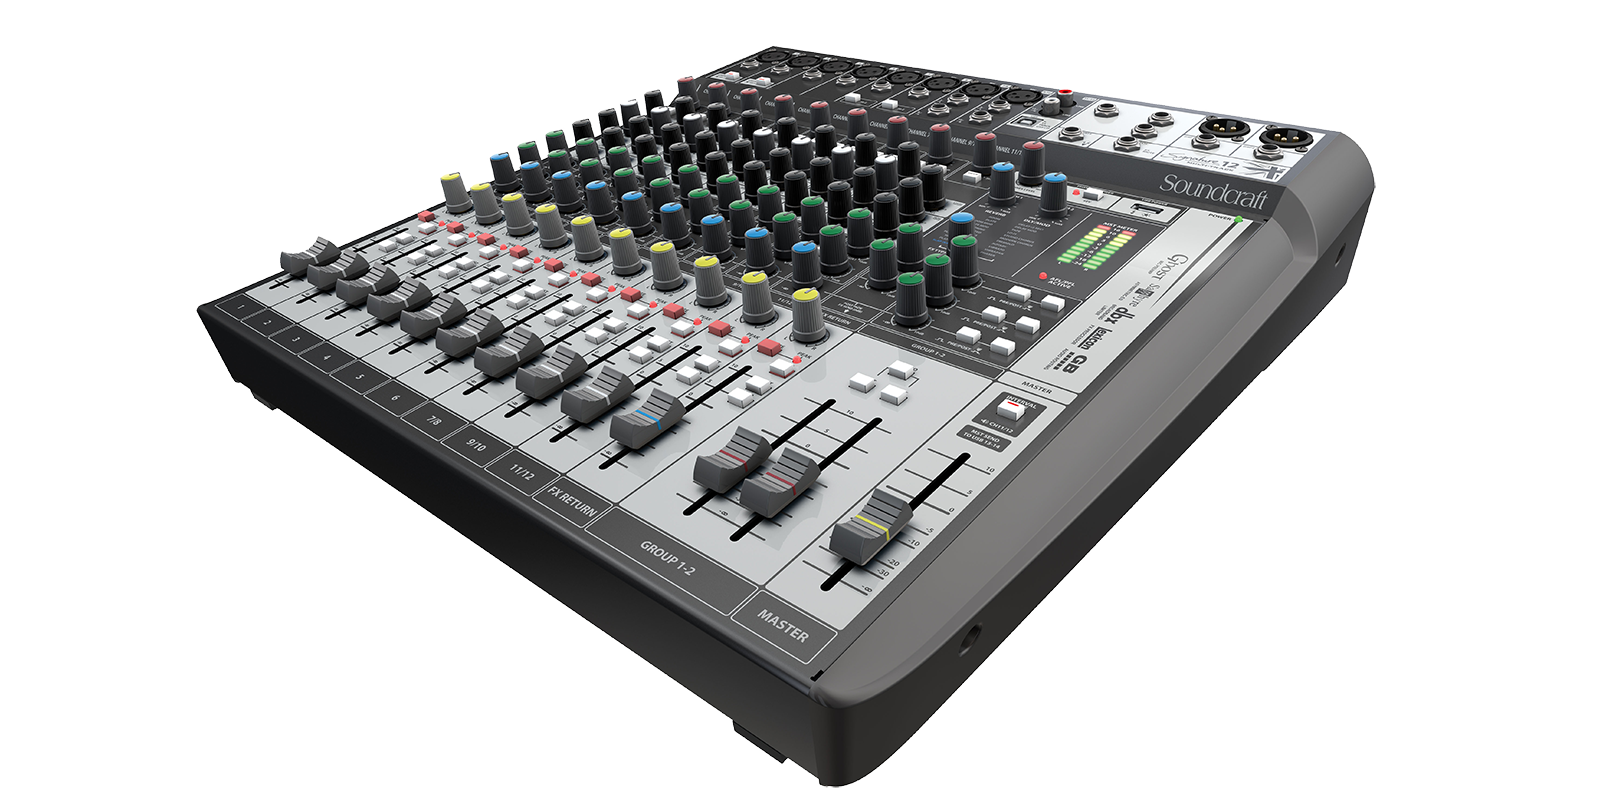 Signature 12 MTK | Soundcraft - Professional Audio Mixers